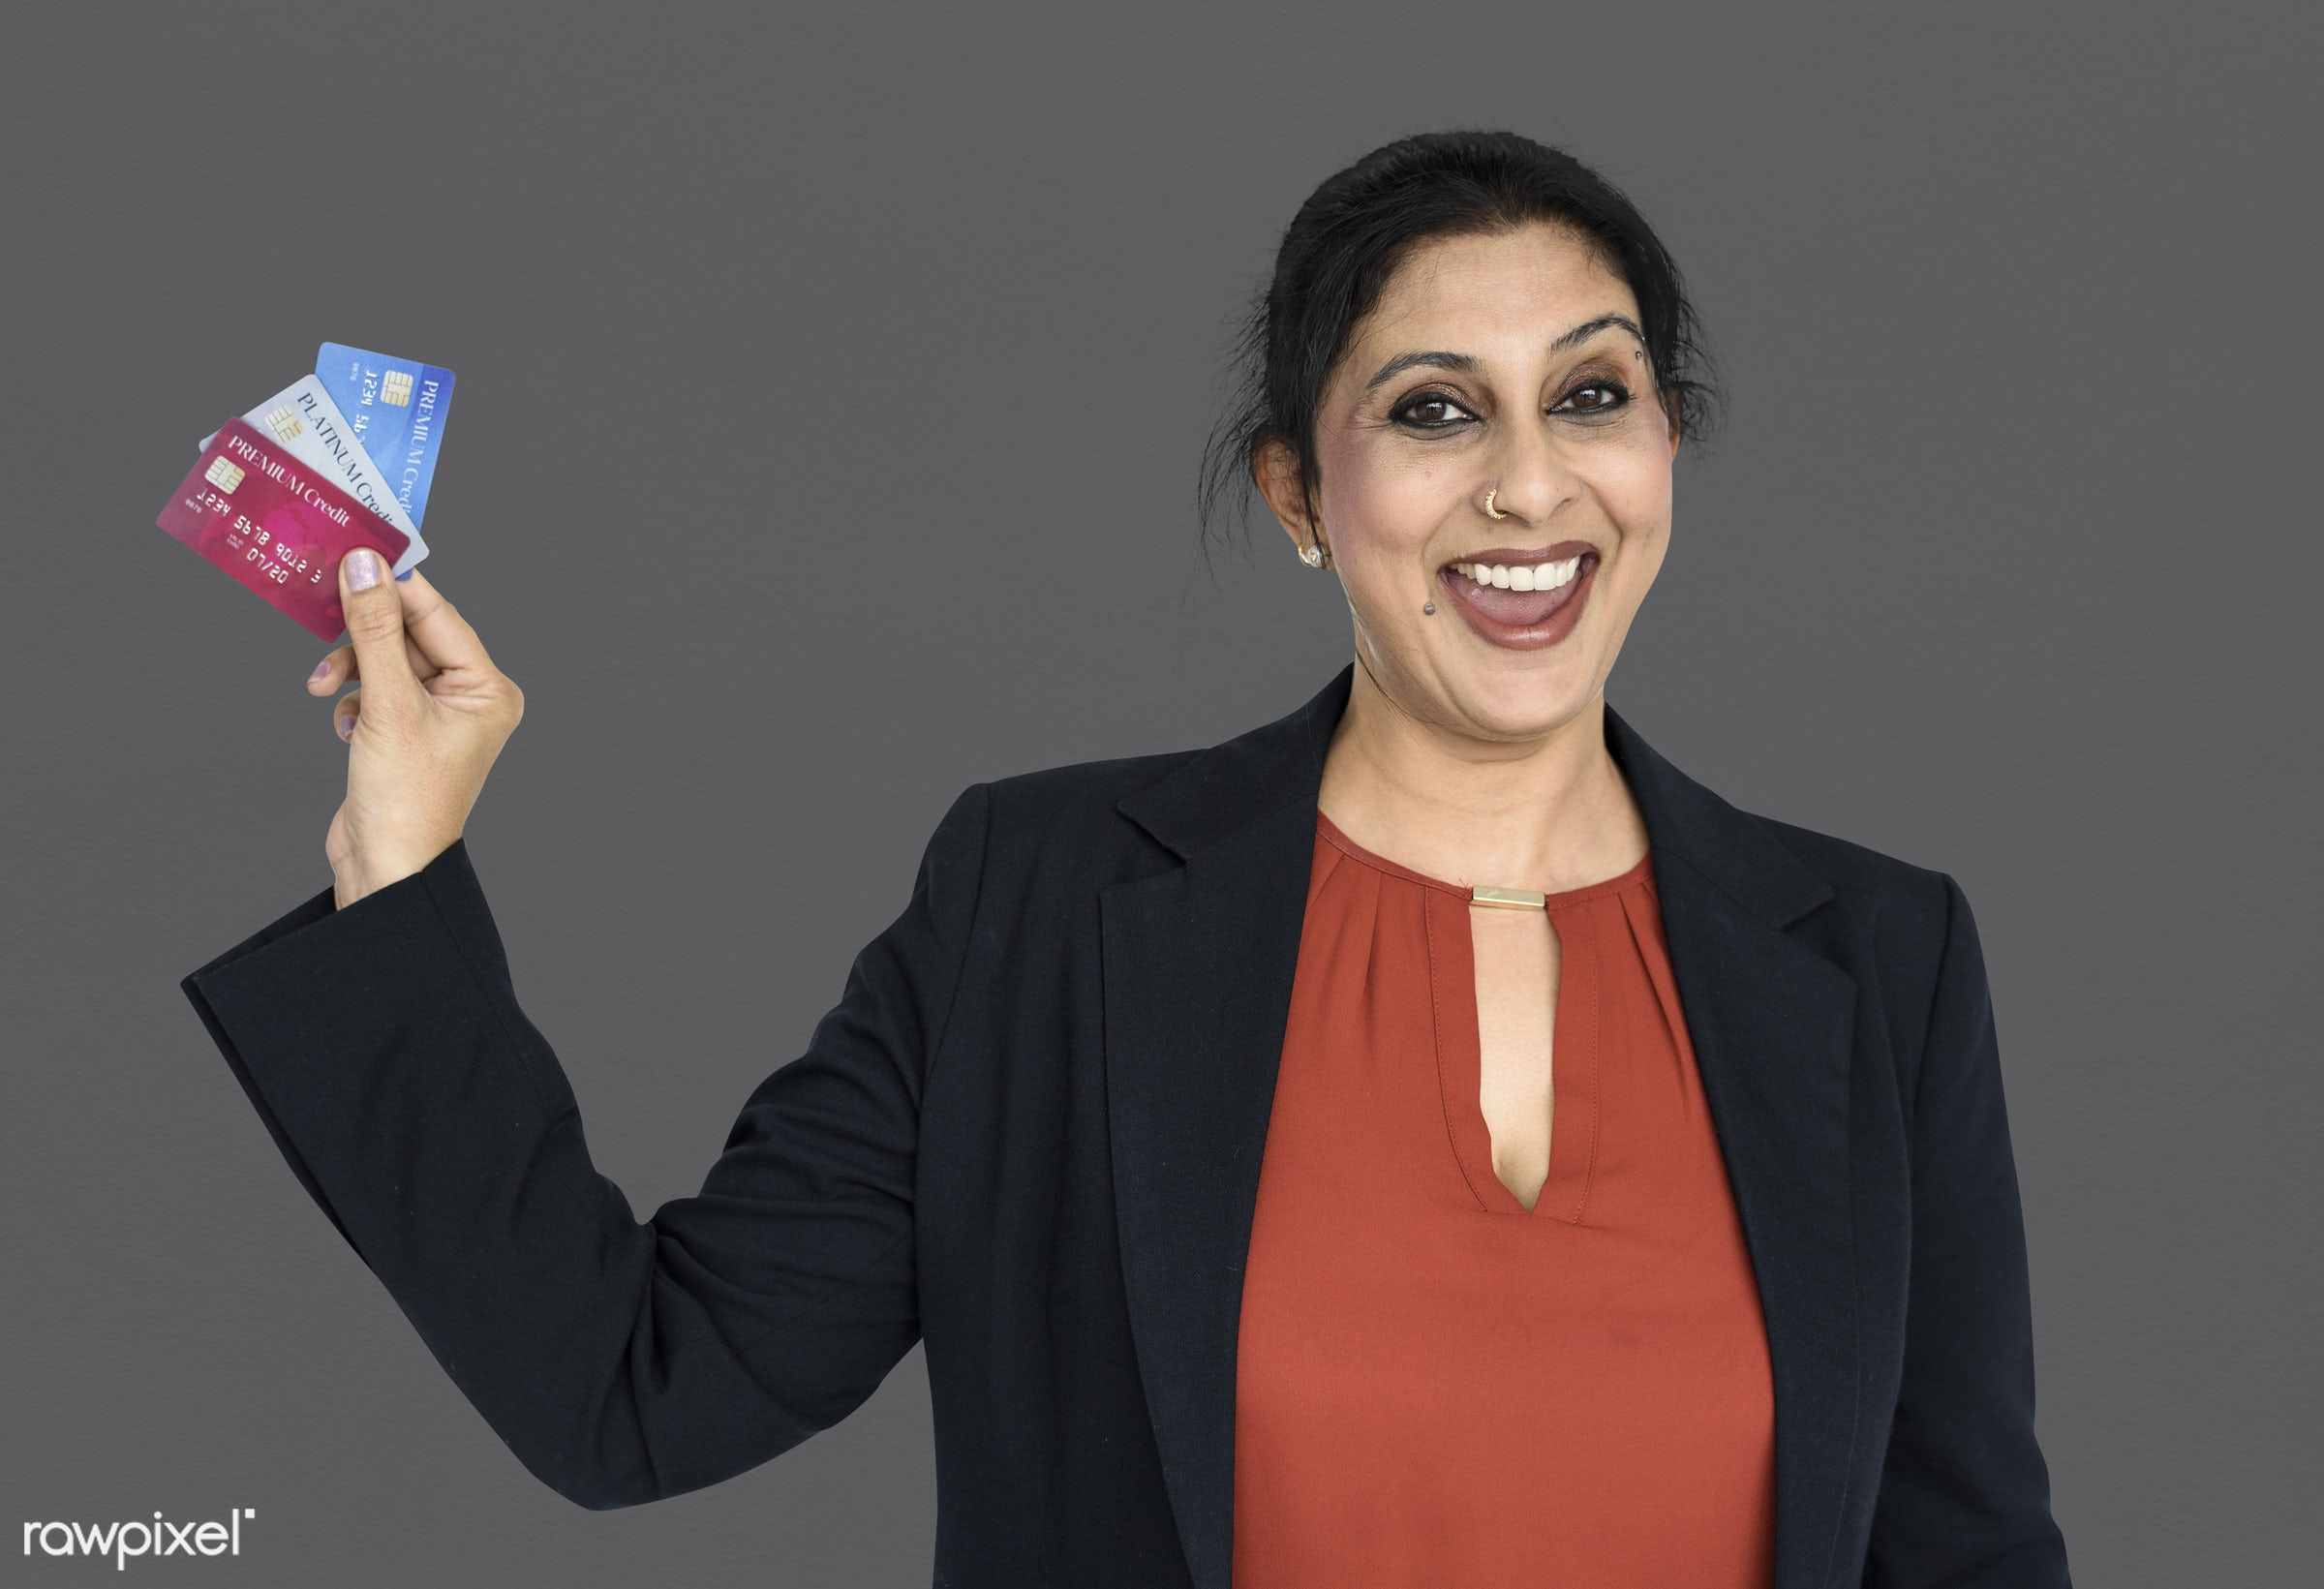 expression, studio, person, credit cards, people, asian, girl, woman, happy, smile, credit, cheerful, smiling, cards,...